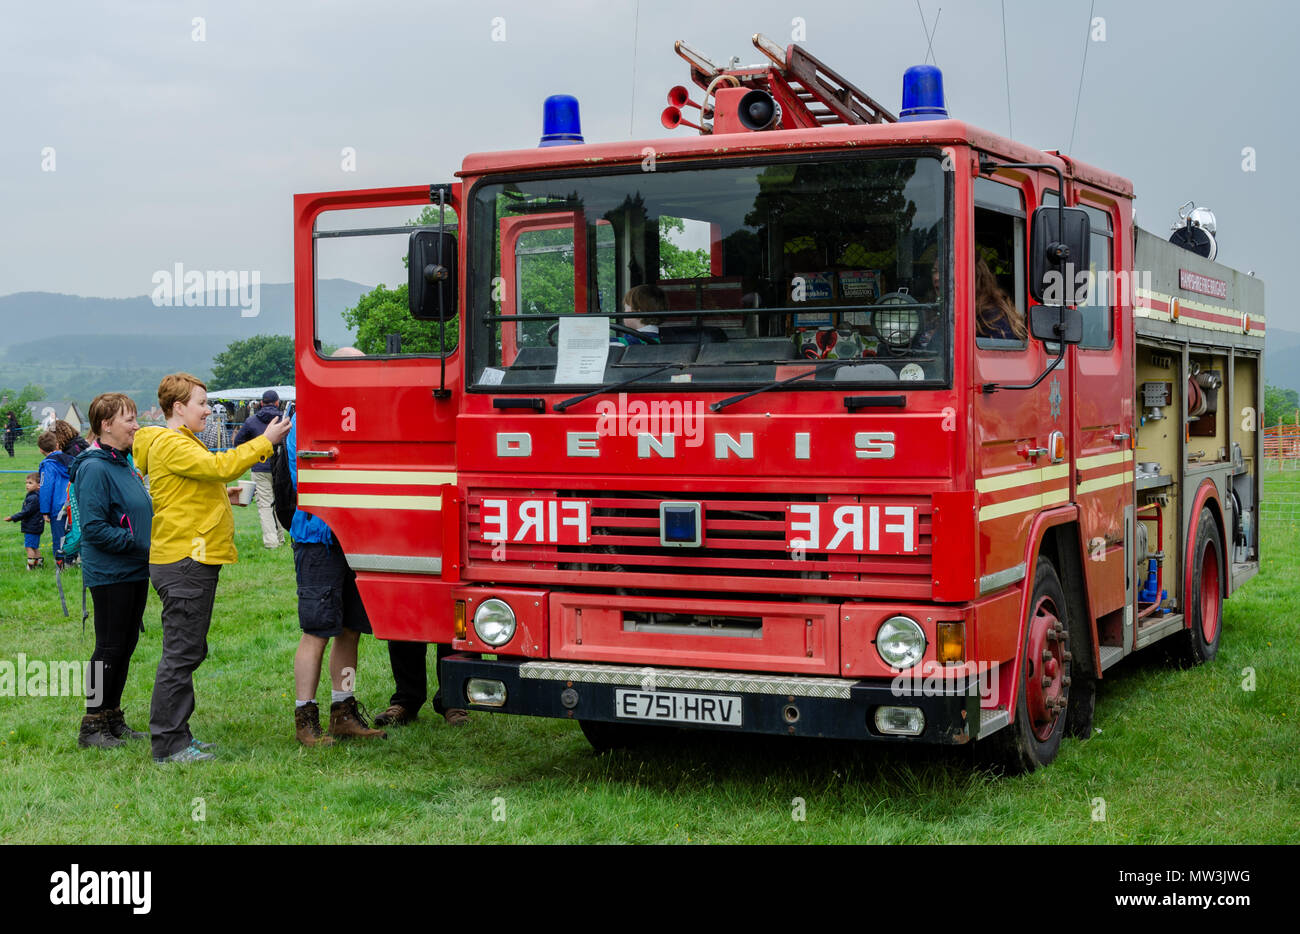 Bala Lake, UK: May 27, 2018: Despite the poor weather, The Festival of Transport saw a good turn out of classic cars, tractors, bikes, Landrovers, com Stock Photo